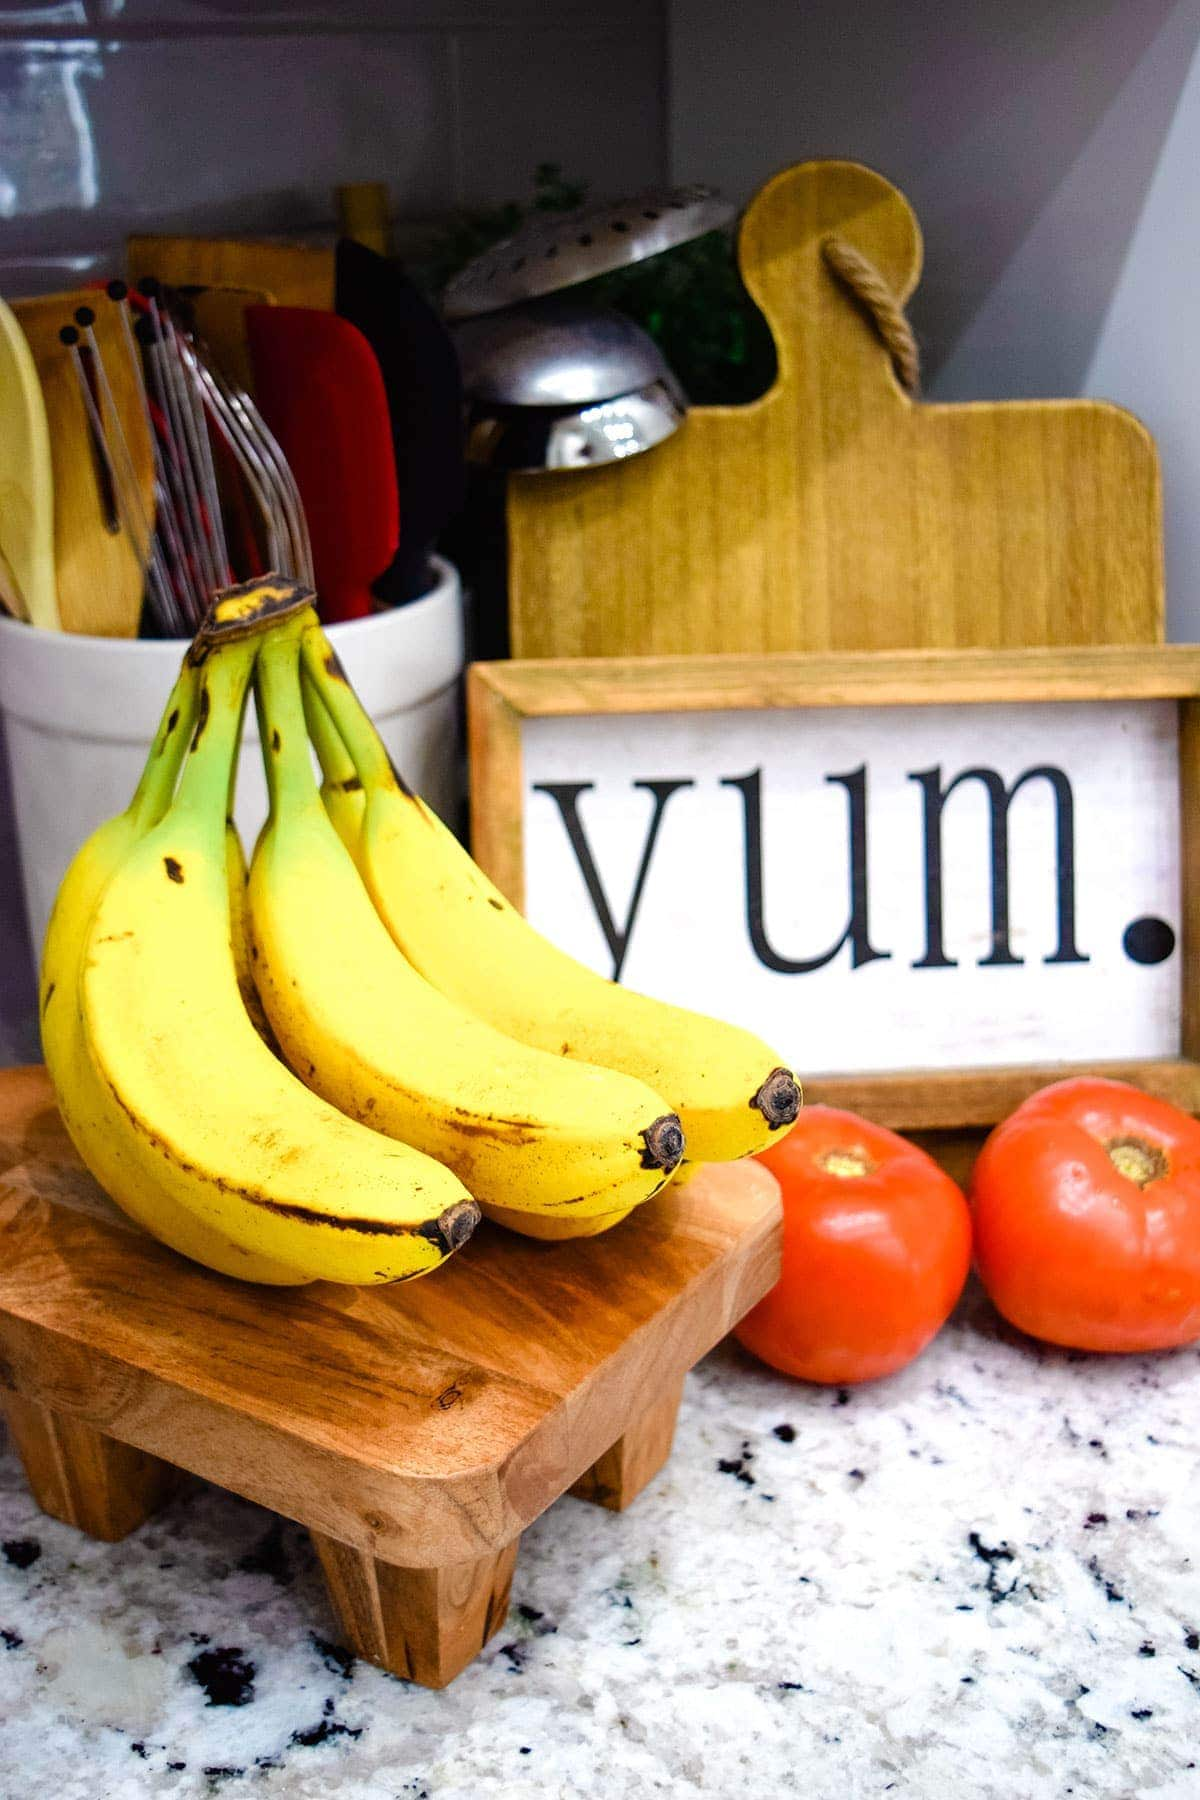 Bananas on kitchen counter with tomatoes and yum kitchen sign